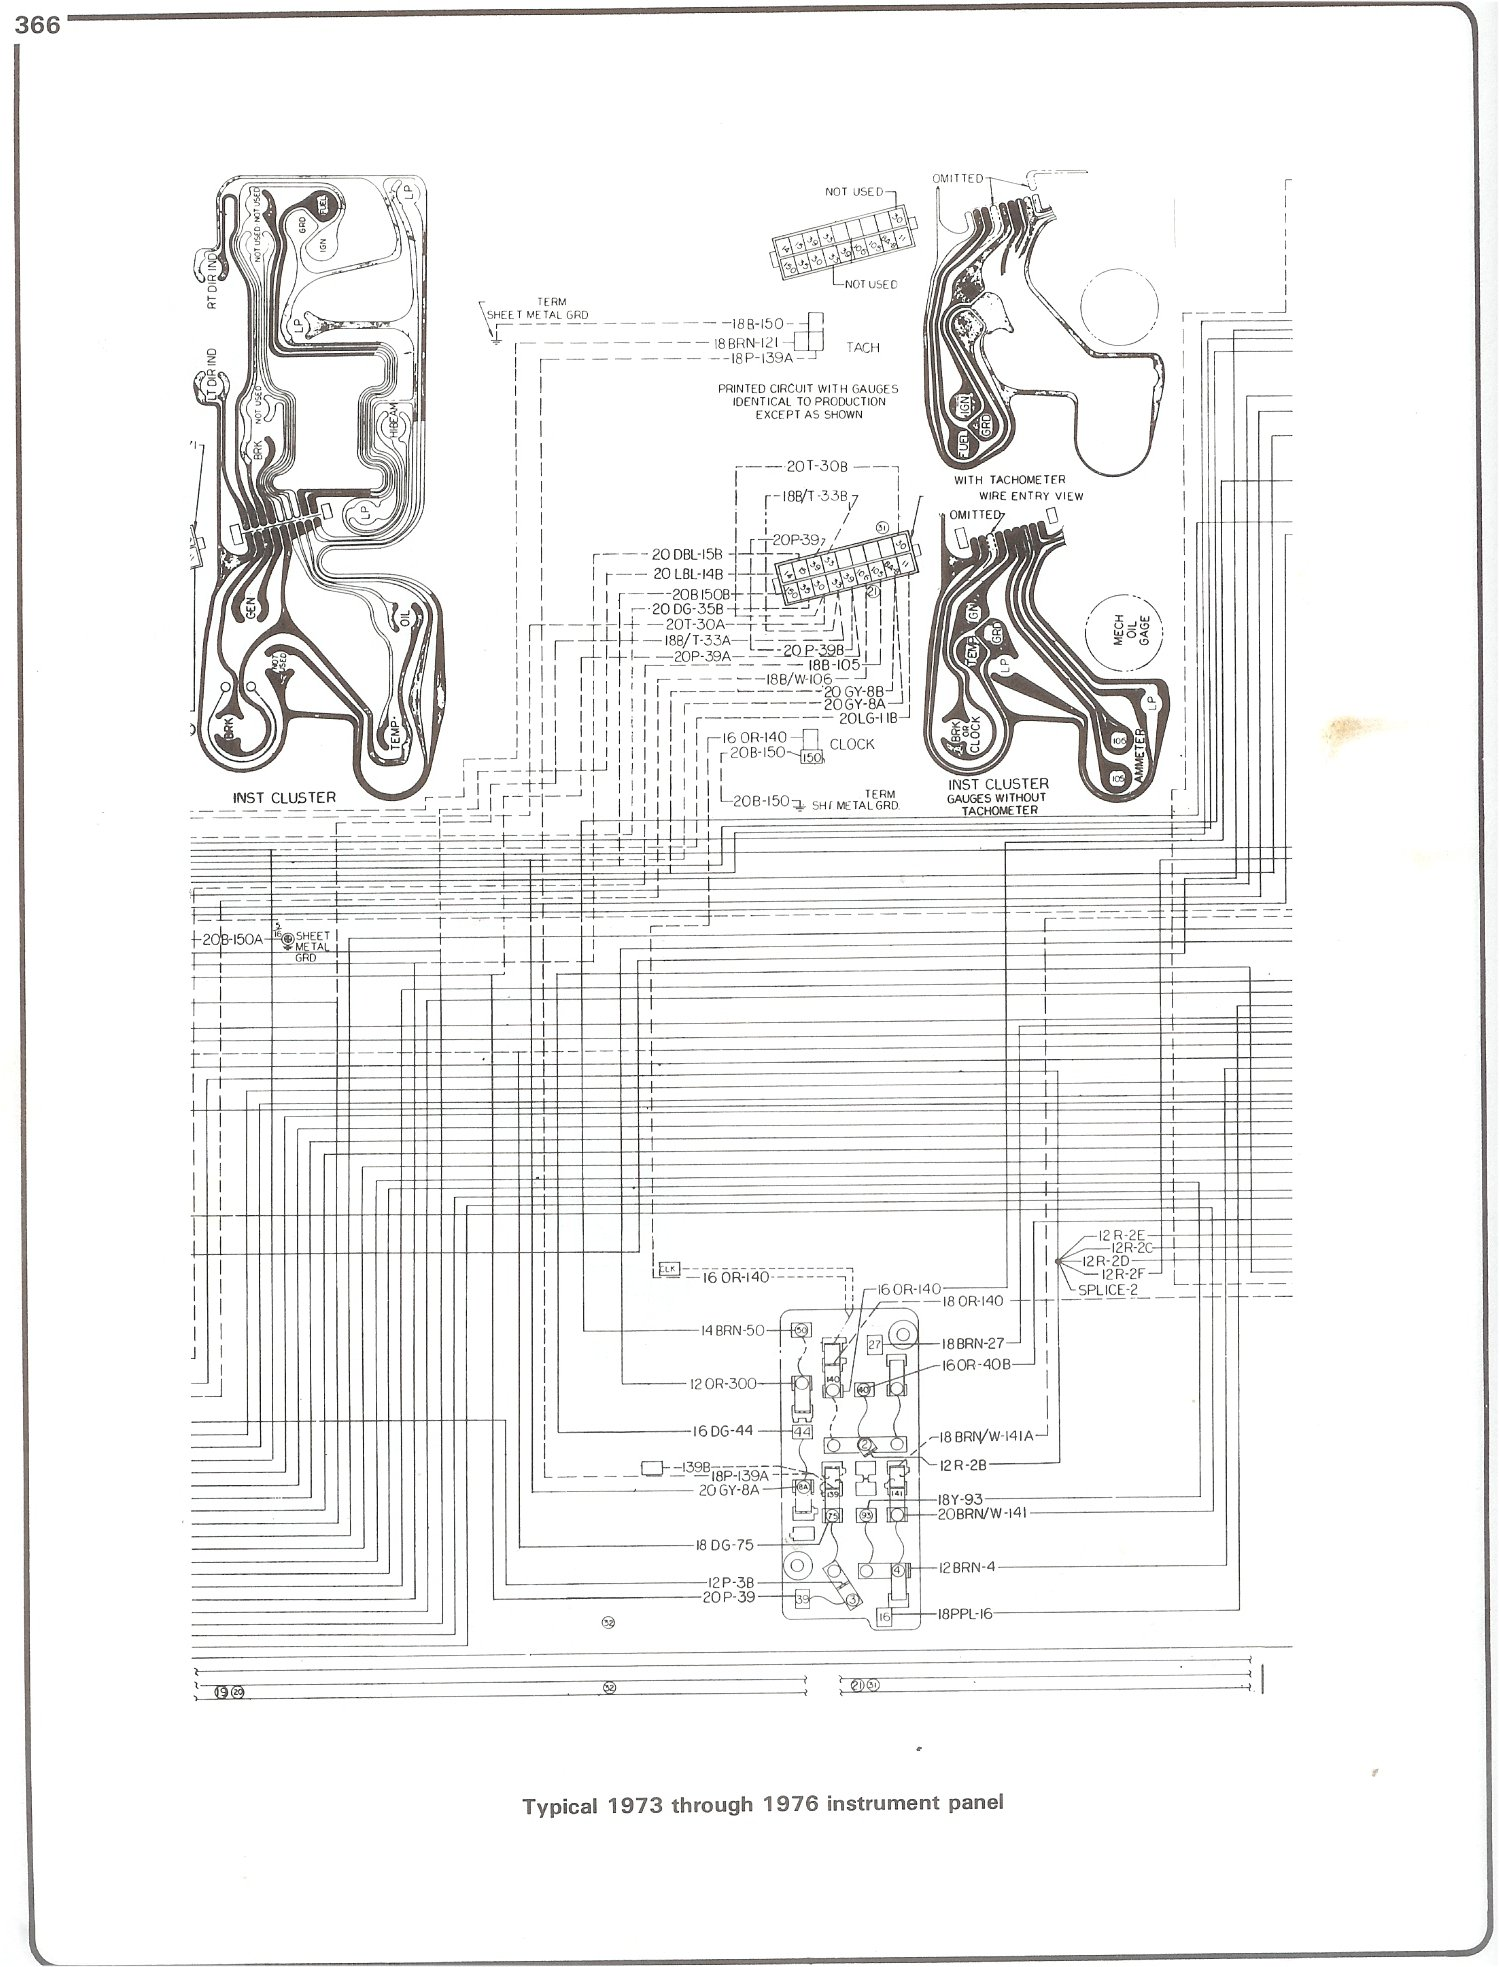 1986 Chevy K10 Wiring Diagram List Of Schematic Circuit Stereo For 86 Complete 73 87 Diagrams Rh Forum 87chevytrucks Com Radio